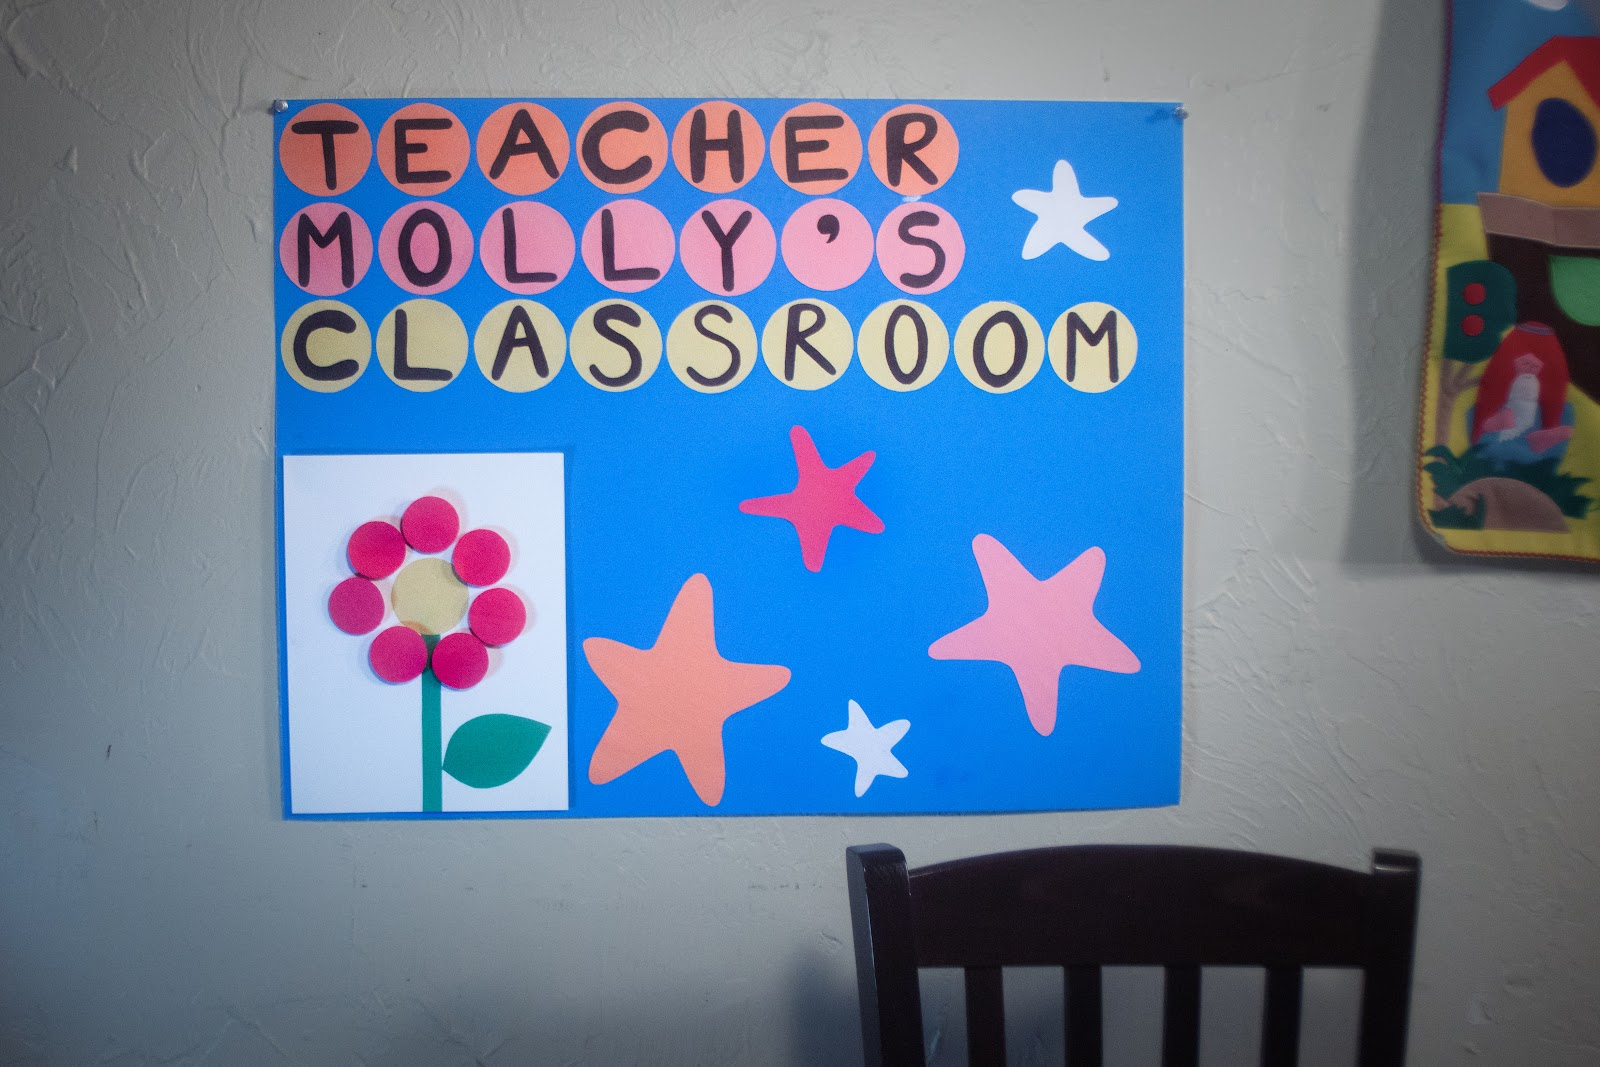 background poster for the online classroom